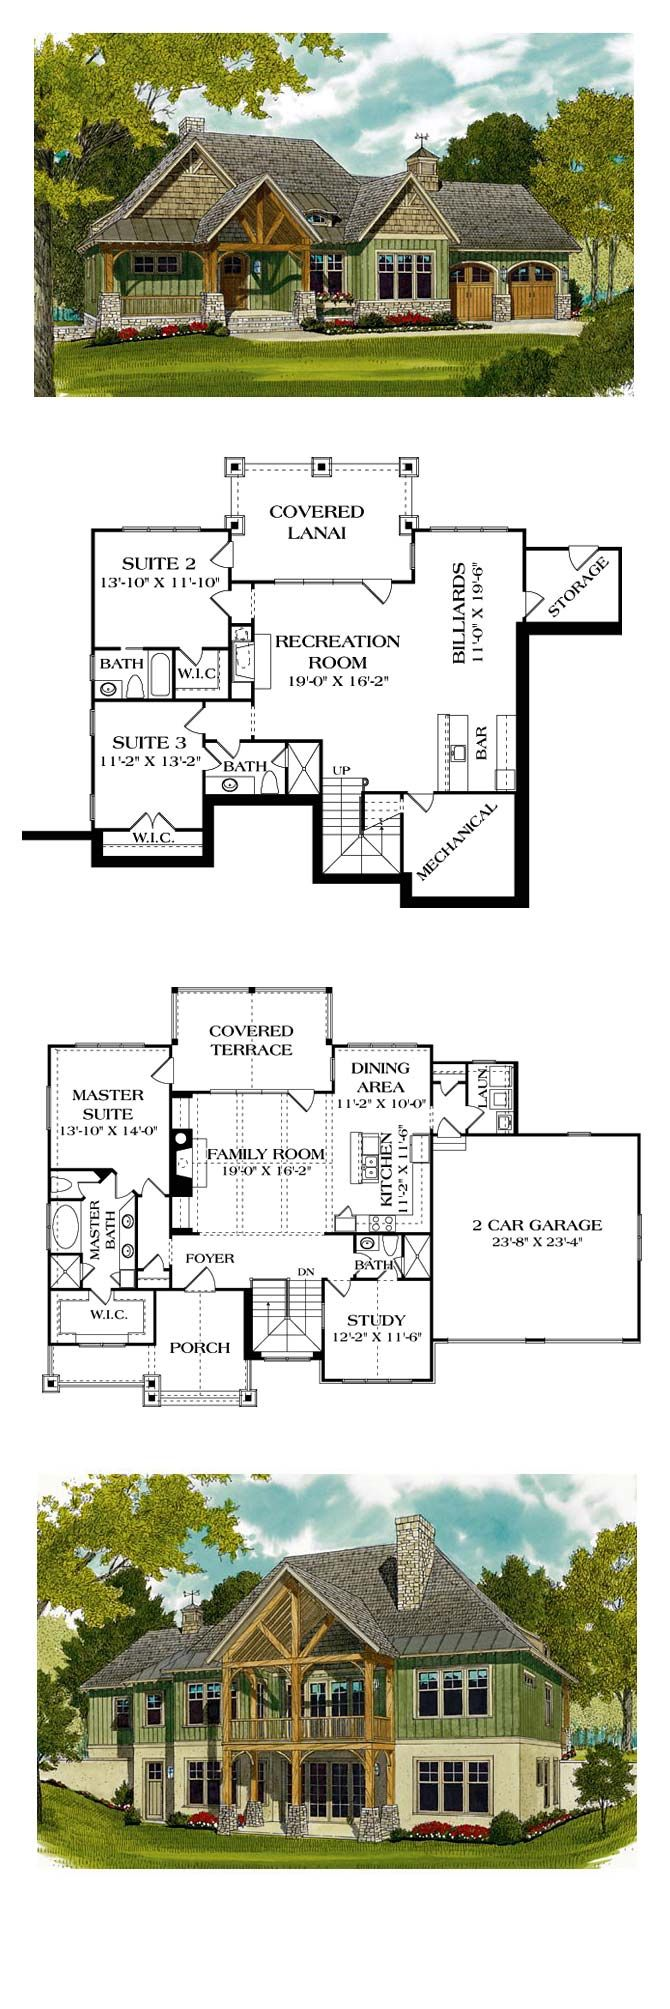 French Country House Plan 97044 | Total Living Area: 2764 sq. ft., 3 bedrooms and 4 bathrooms. #frenchcountryhome